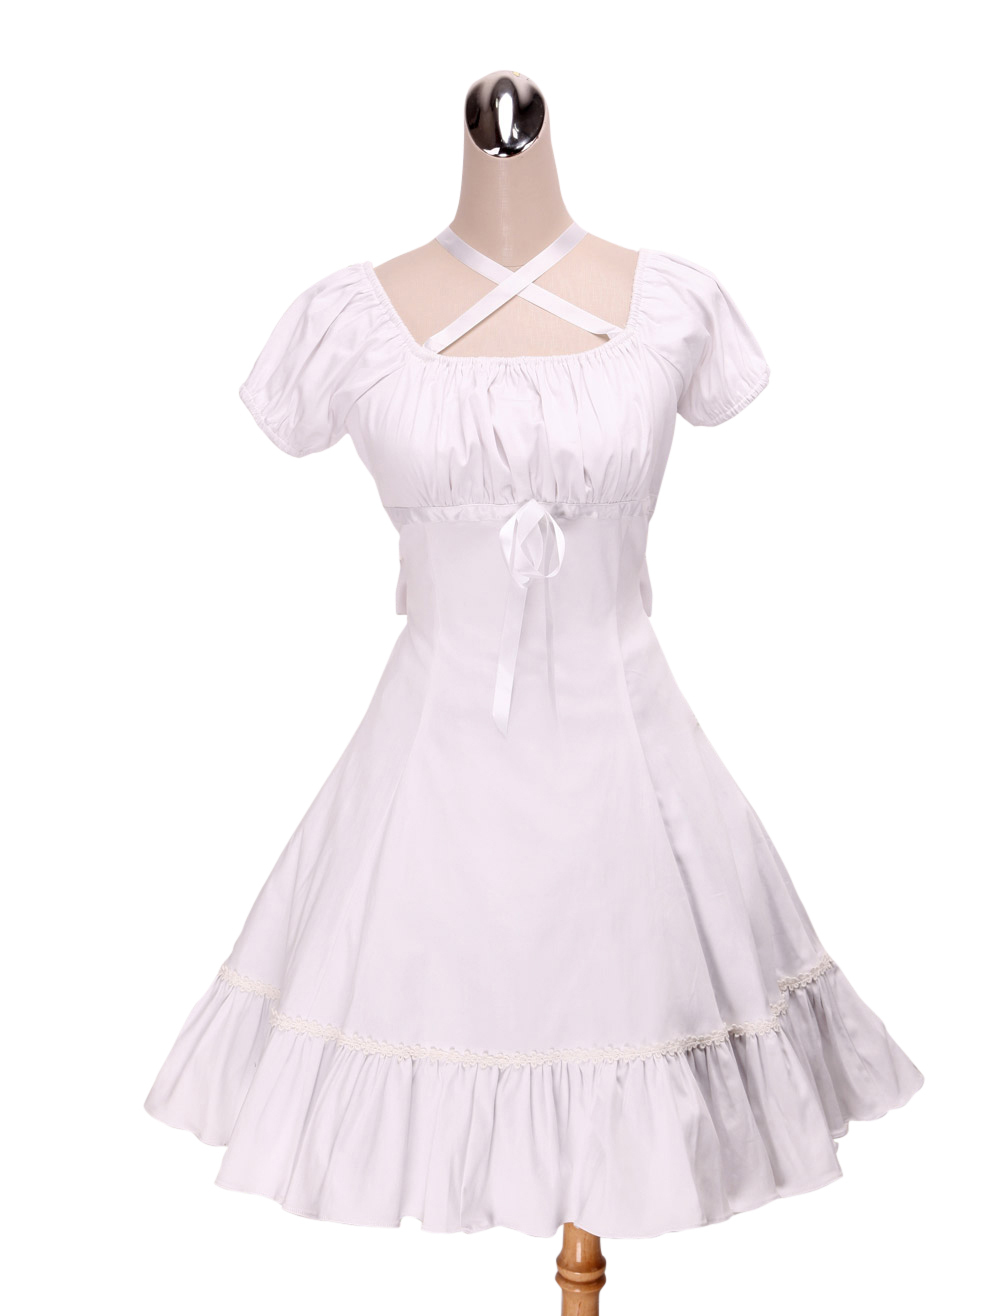 Primary image for ZeroMart White Cotton Empire Waist Ruffles Cute Sweet School Lolita Dress